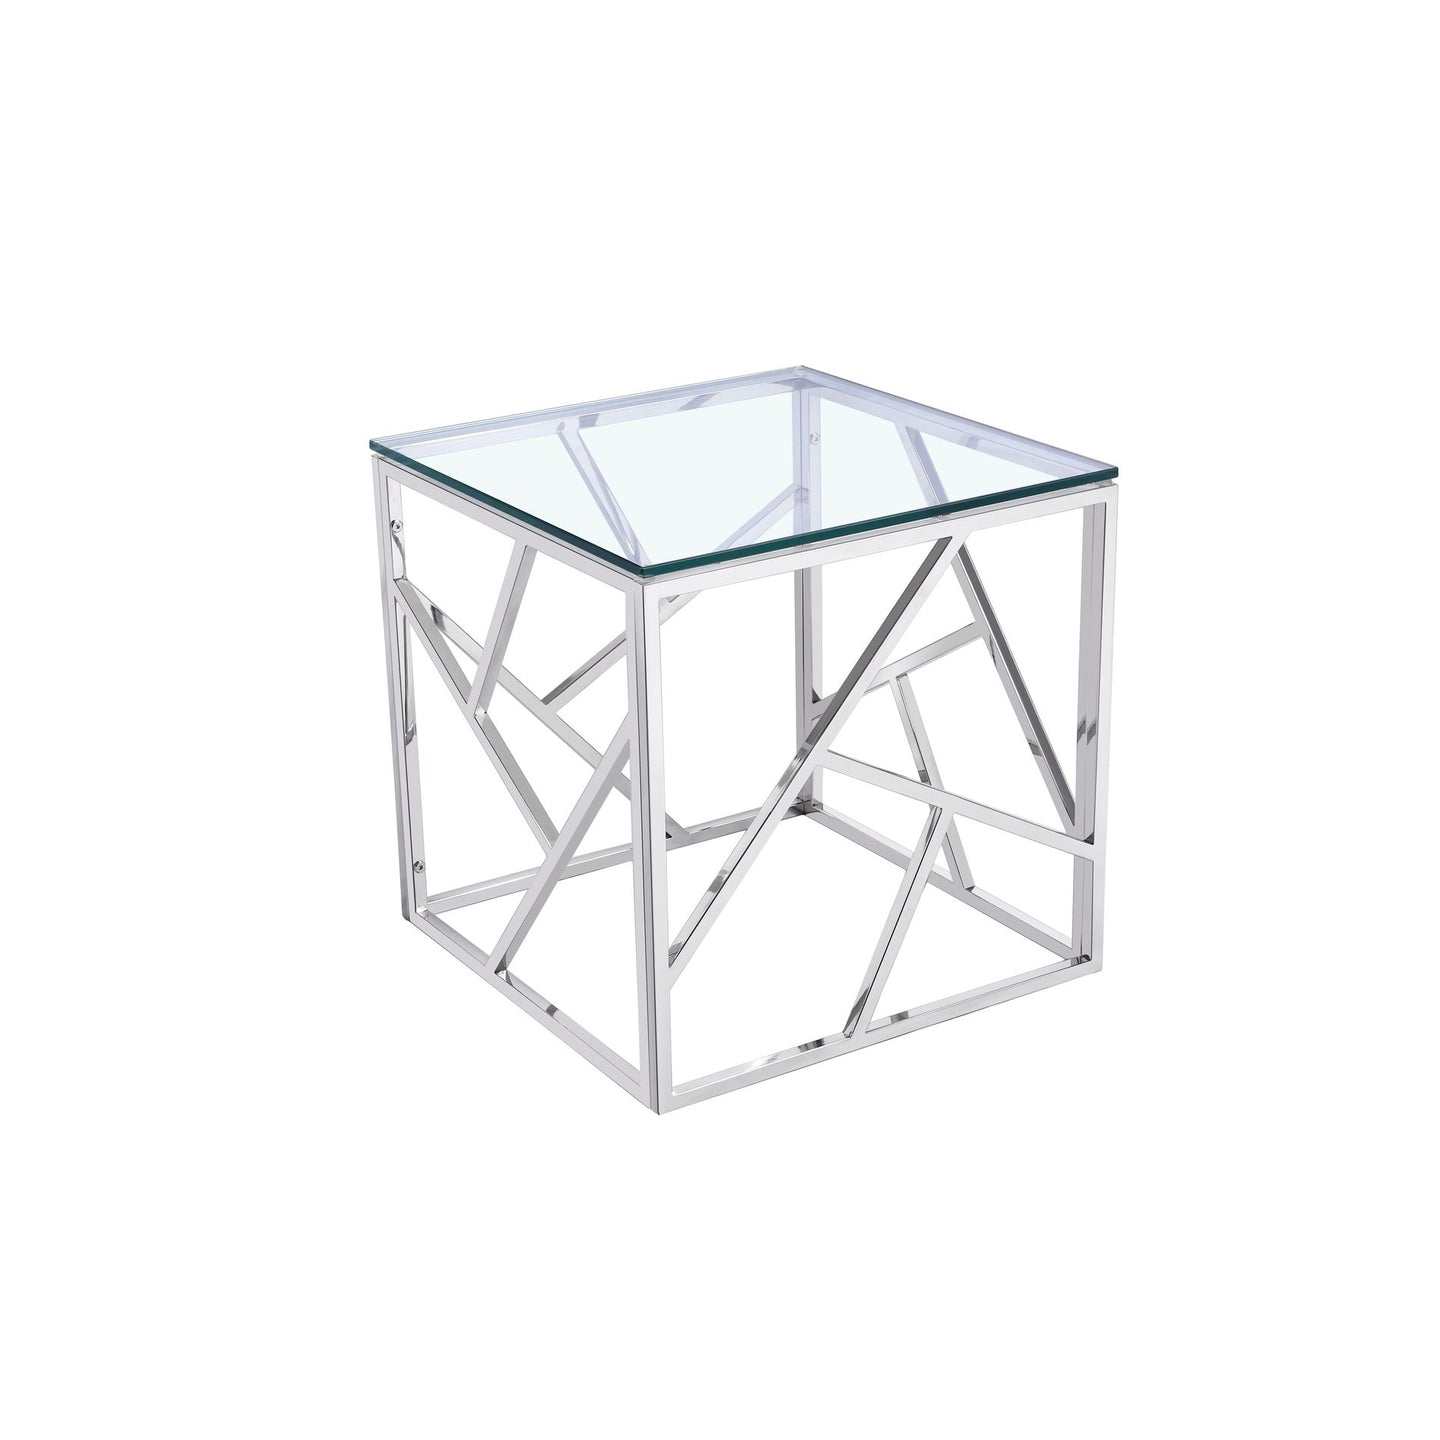 Cortesi Home Nico Square Stainless Steel End Table